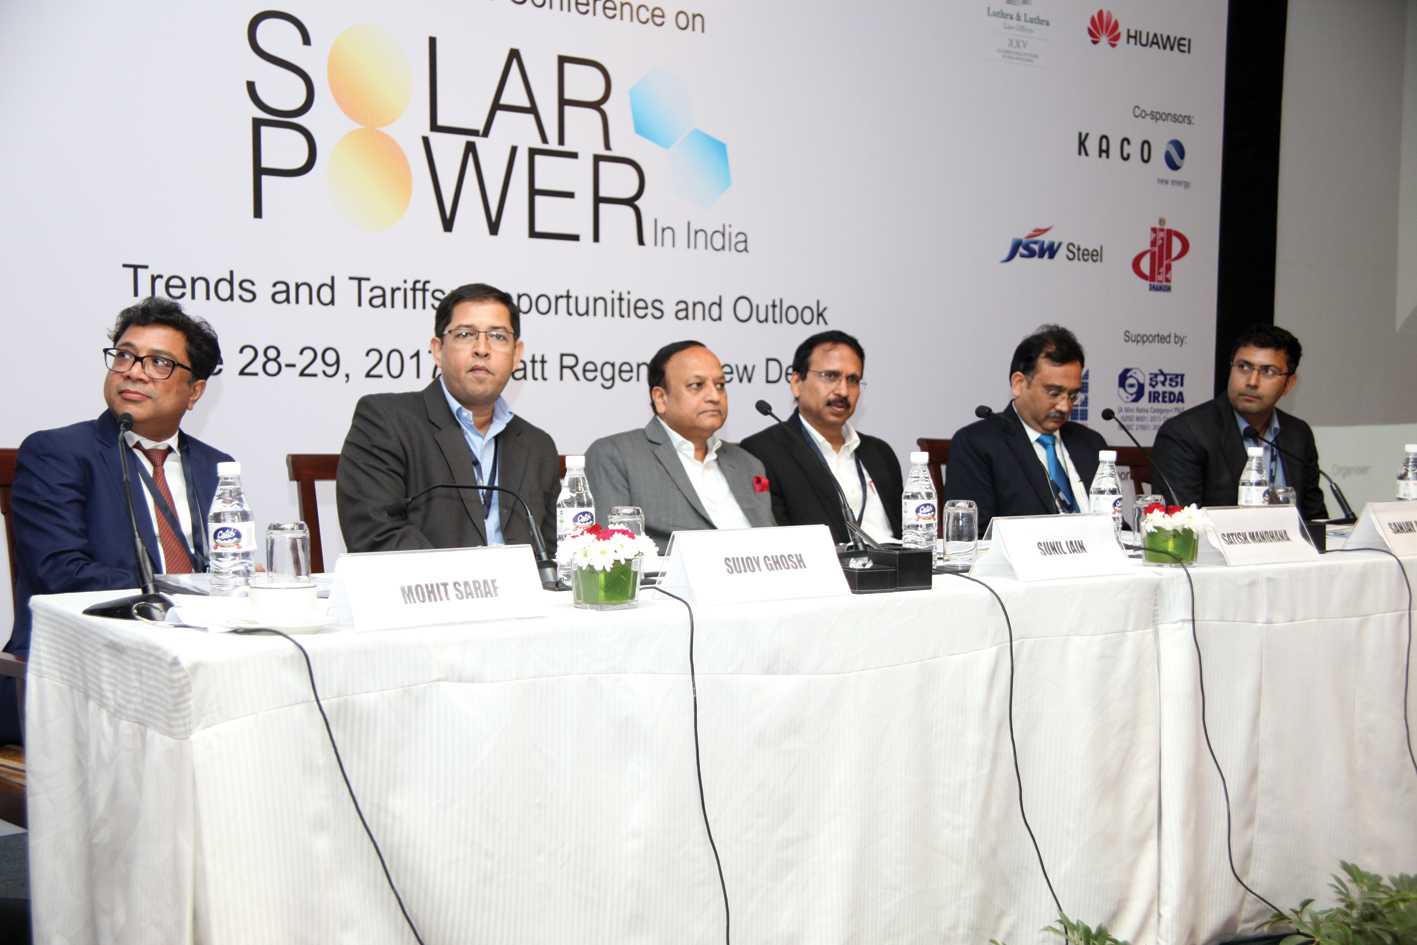 "(From left) Mohit Saraf, Senior Partner, Luthra & Luthra;  Sujoy Ghosh, Country Head, India, First Solar Power; Sunil Jain, Chief Executive Officer (CEO) and Executive Director, Hero Future Energies; Satish Mandhana, Managing Partner, Private Equity & Sustainable Initatives, IDFC Alternatives; Sanjay Aggarwal, CEO, Fortum India; and Gaurav Sood, CEO, Spring Energy, at the ""Solar Power in India"" conference"